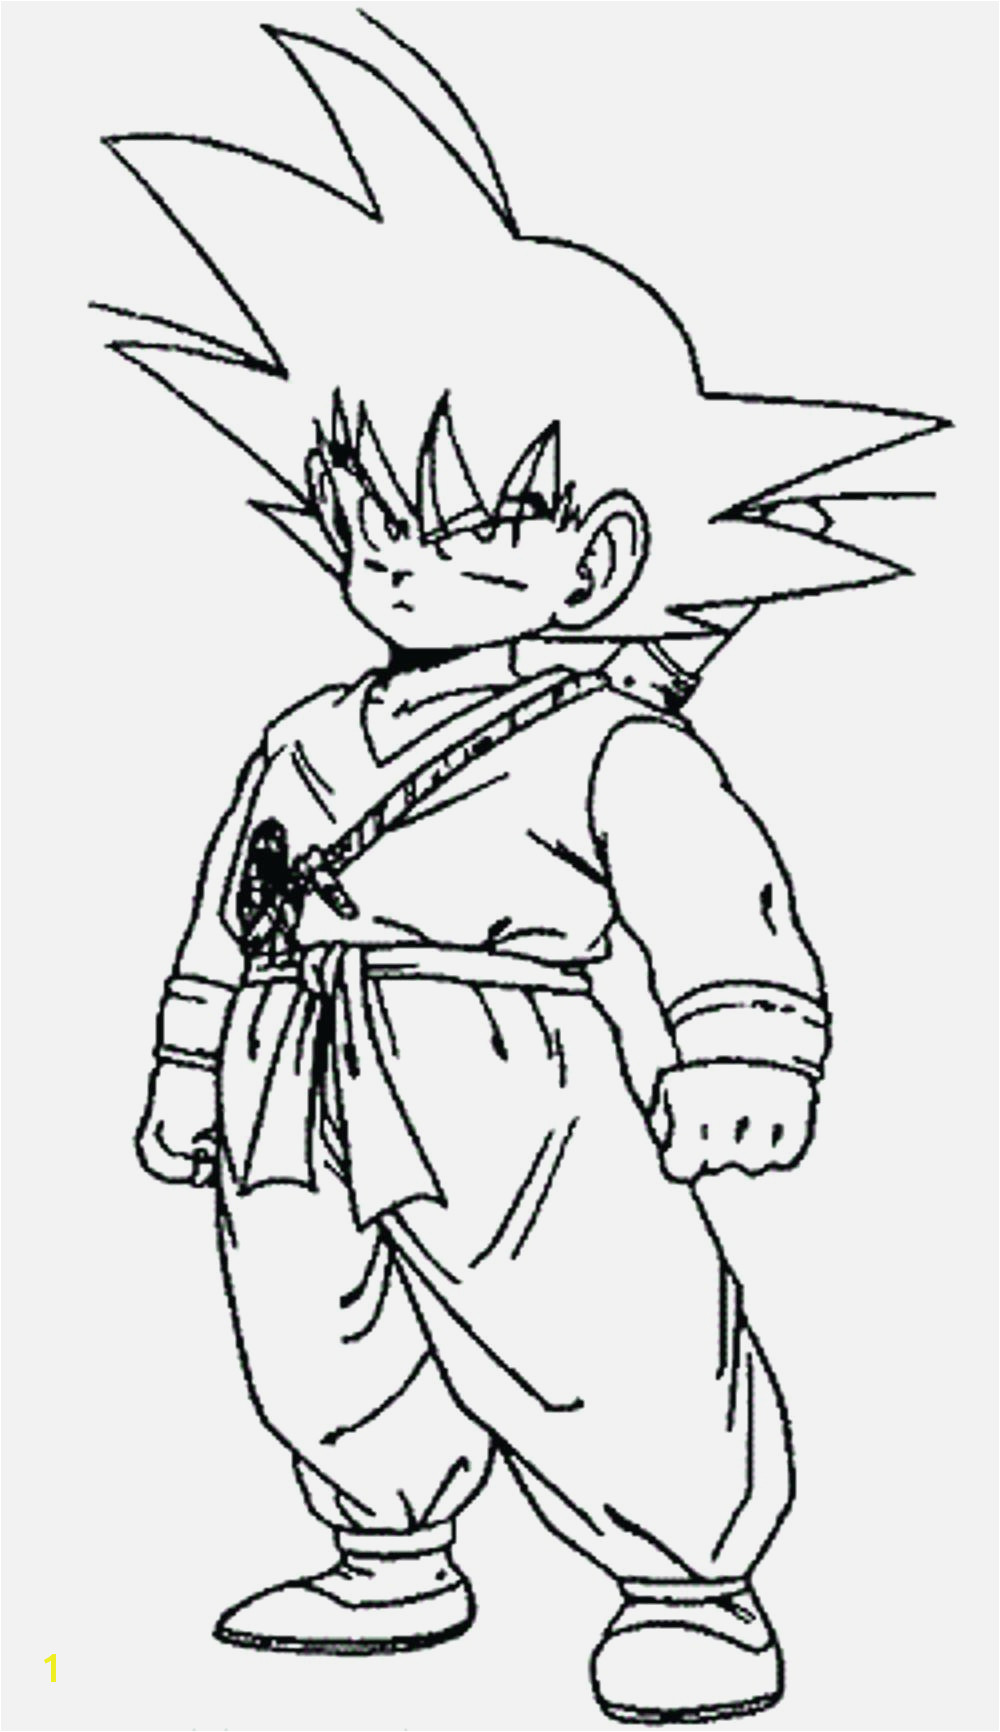 Dragon Ball Z Coloring Pages Easy and Fun Letter Z Coloring Page Best Coloring Page Dragon